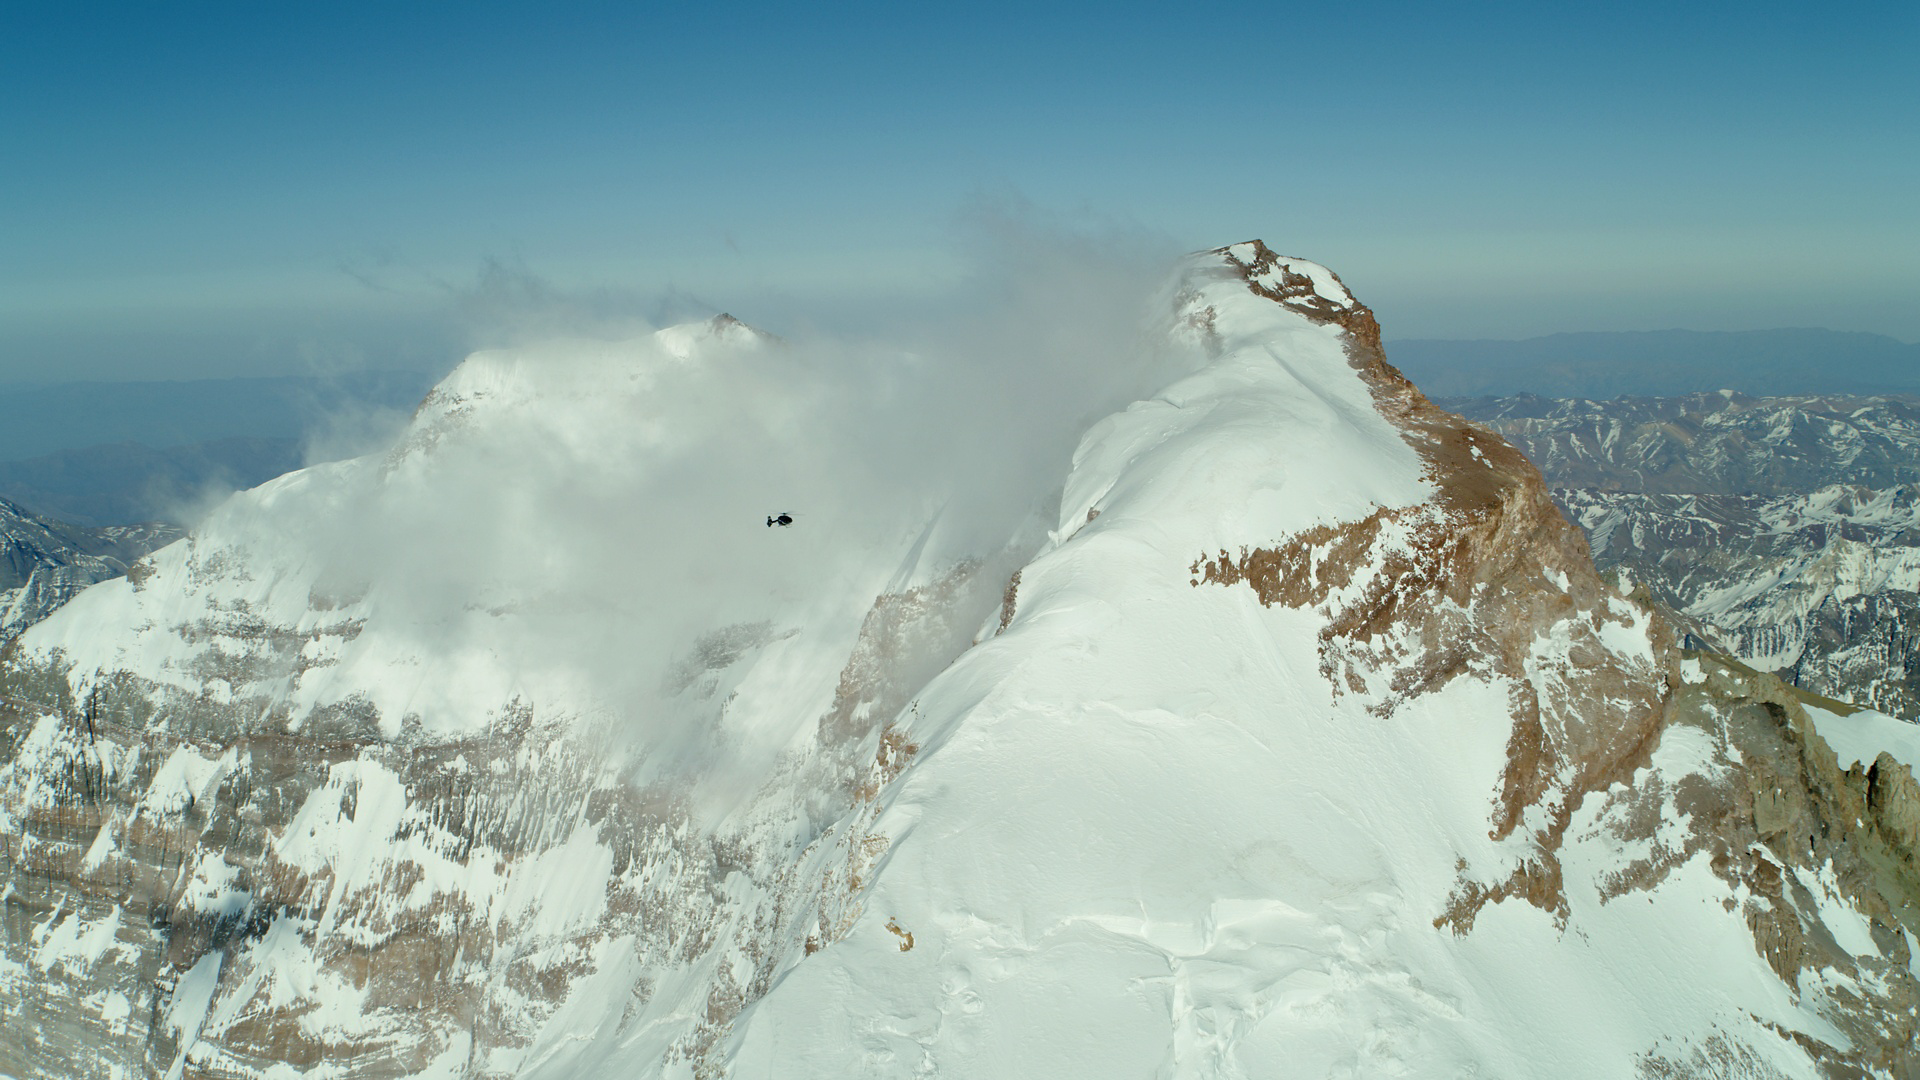 On 24 September, Airbus H145 landed on Argentina's tallest peak, Aconcagua. It was a team effort and opened new frontiers for the twin-engine H145.